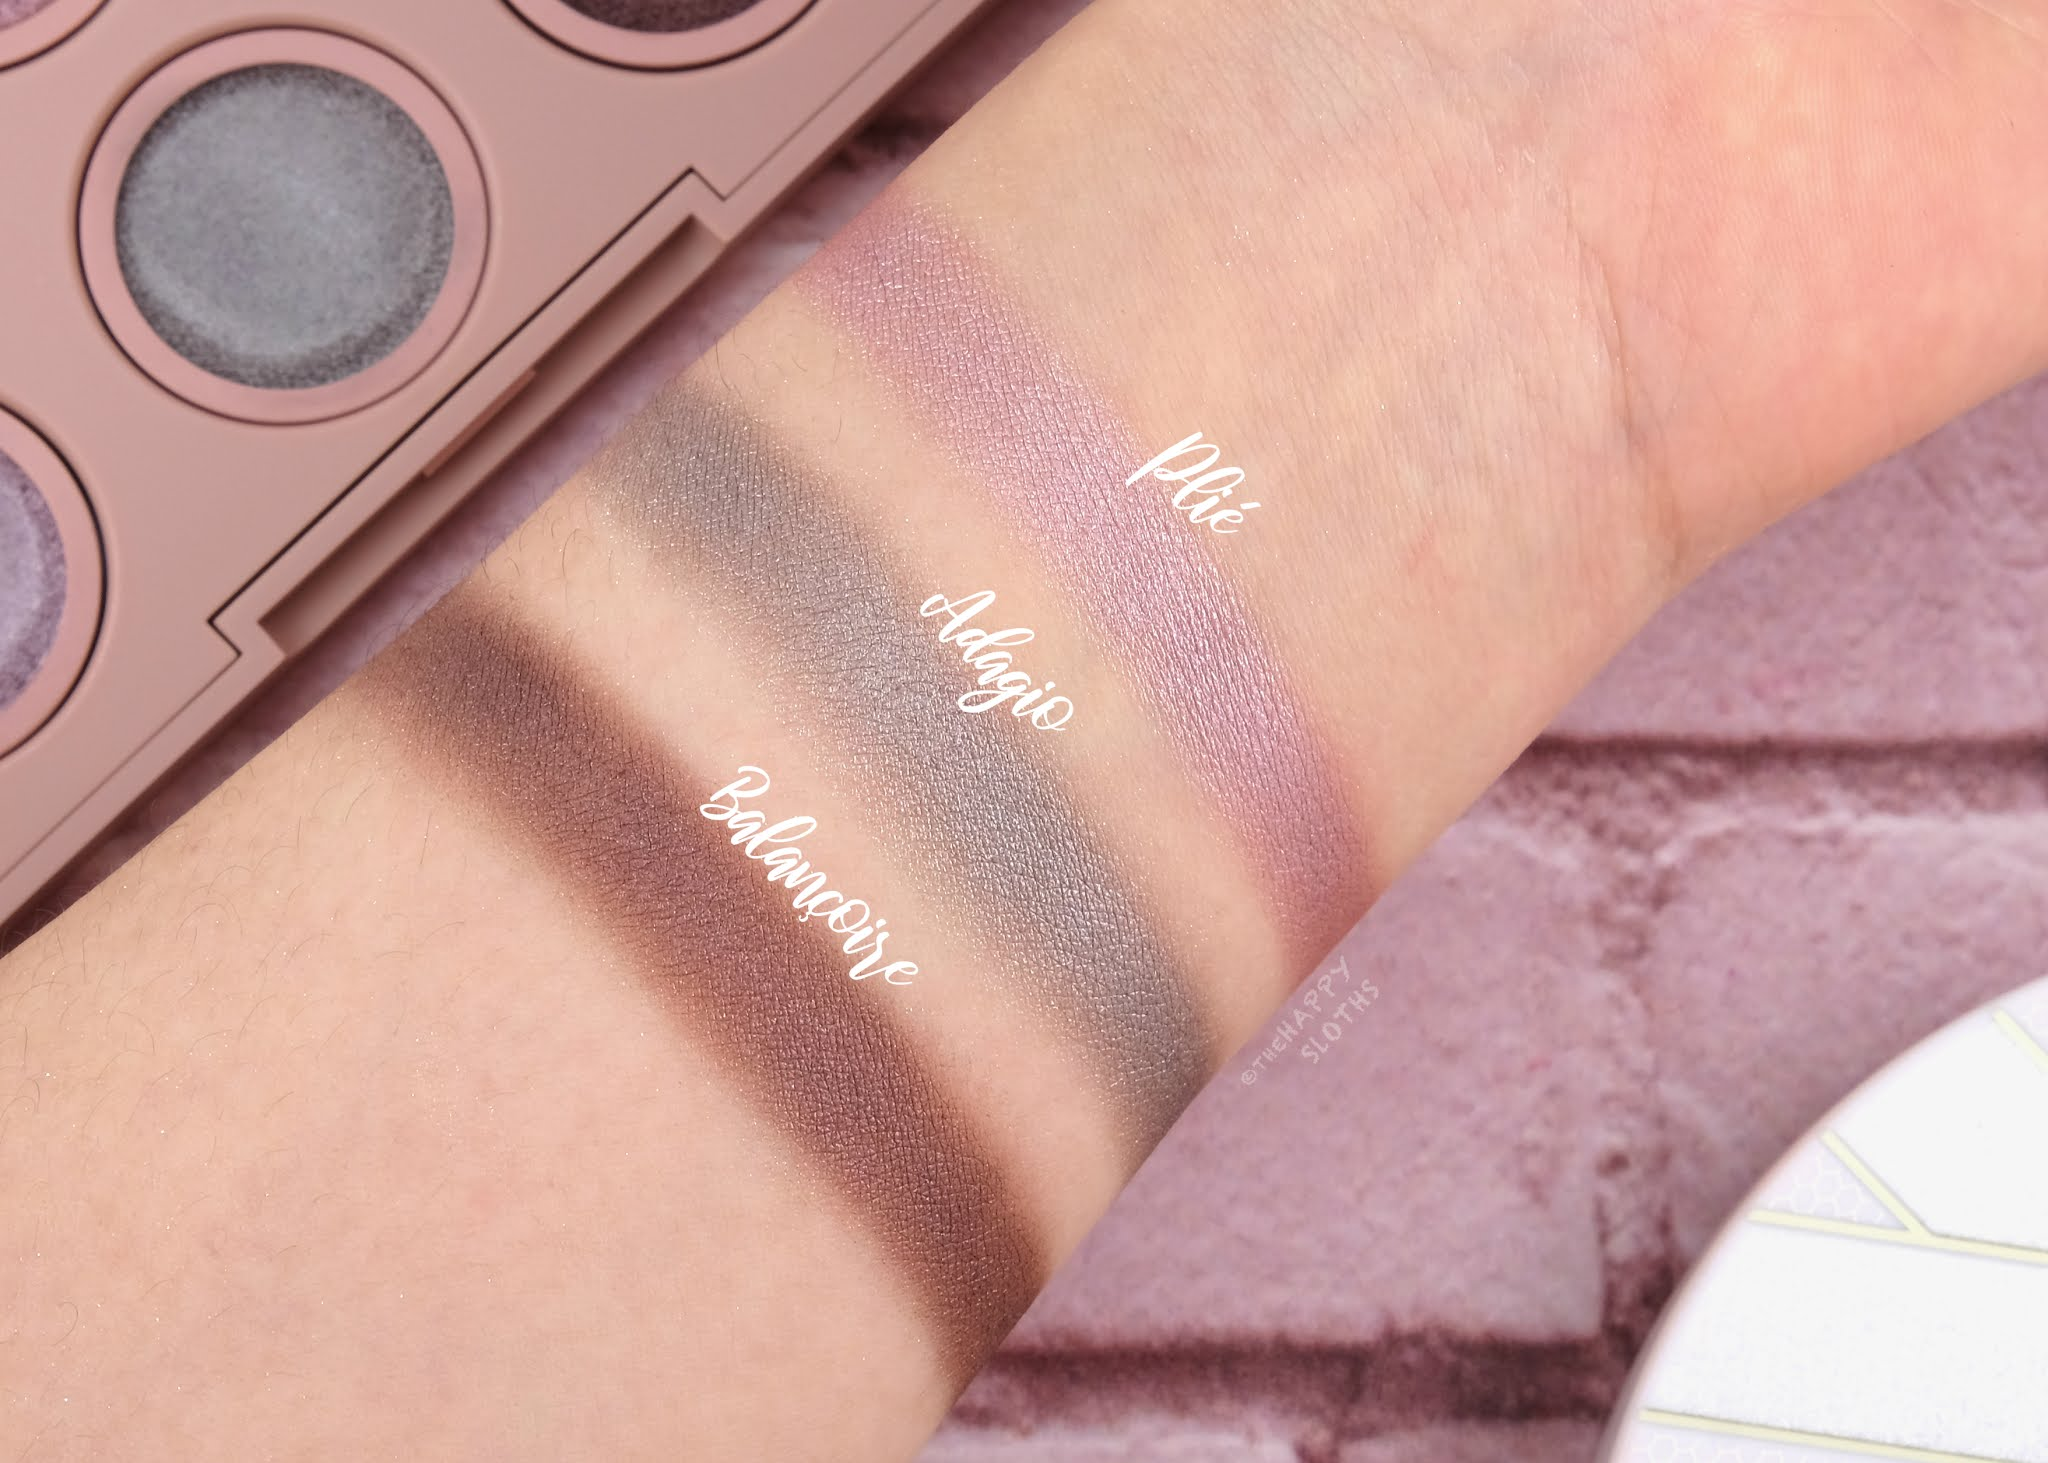 Laura Mercier | Holiday 2020 Prima Ballerina Mini Eyeshadow Palette: Review and Swatches